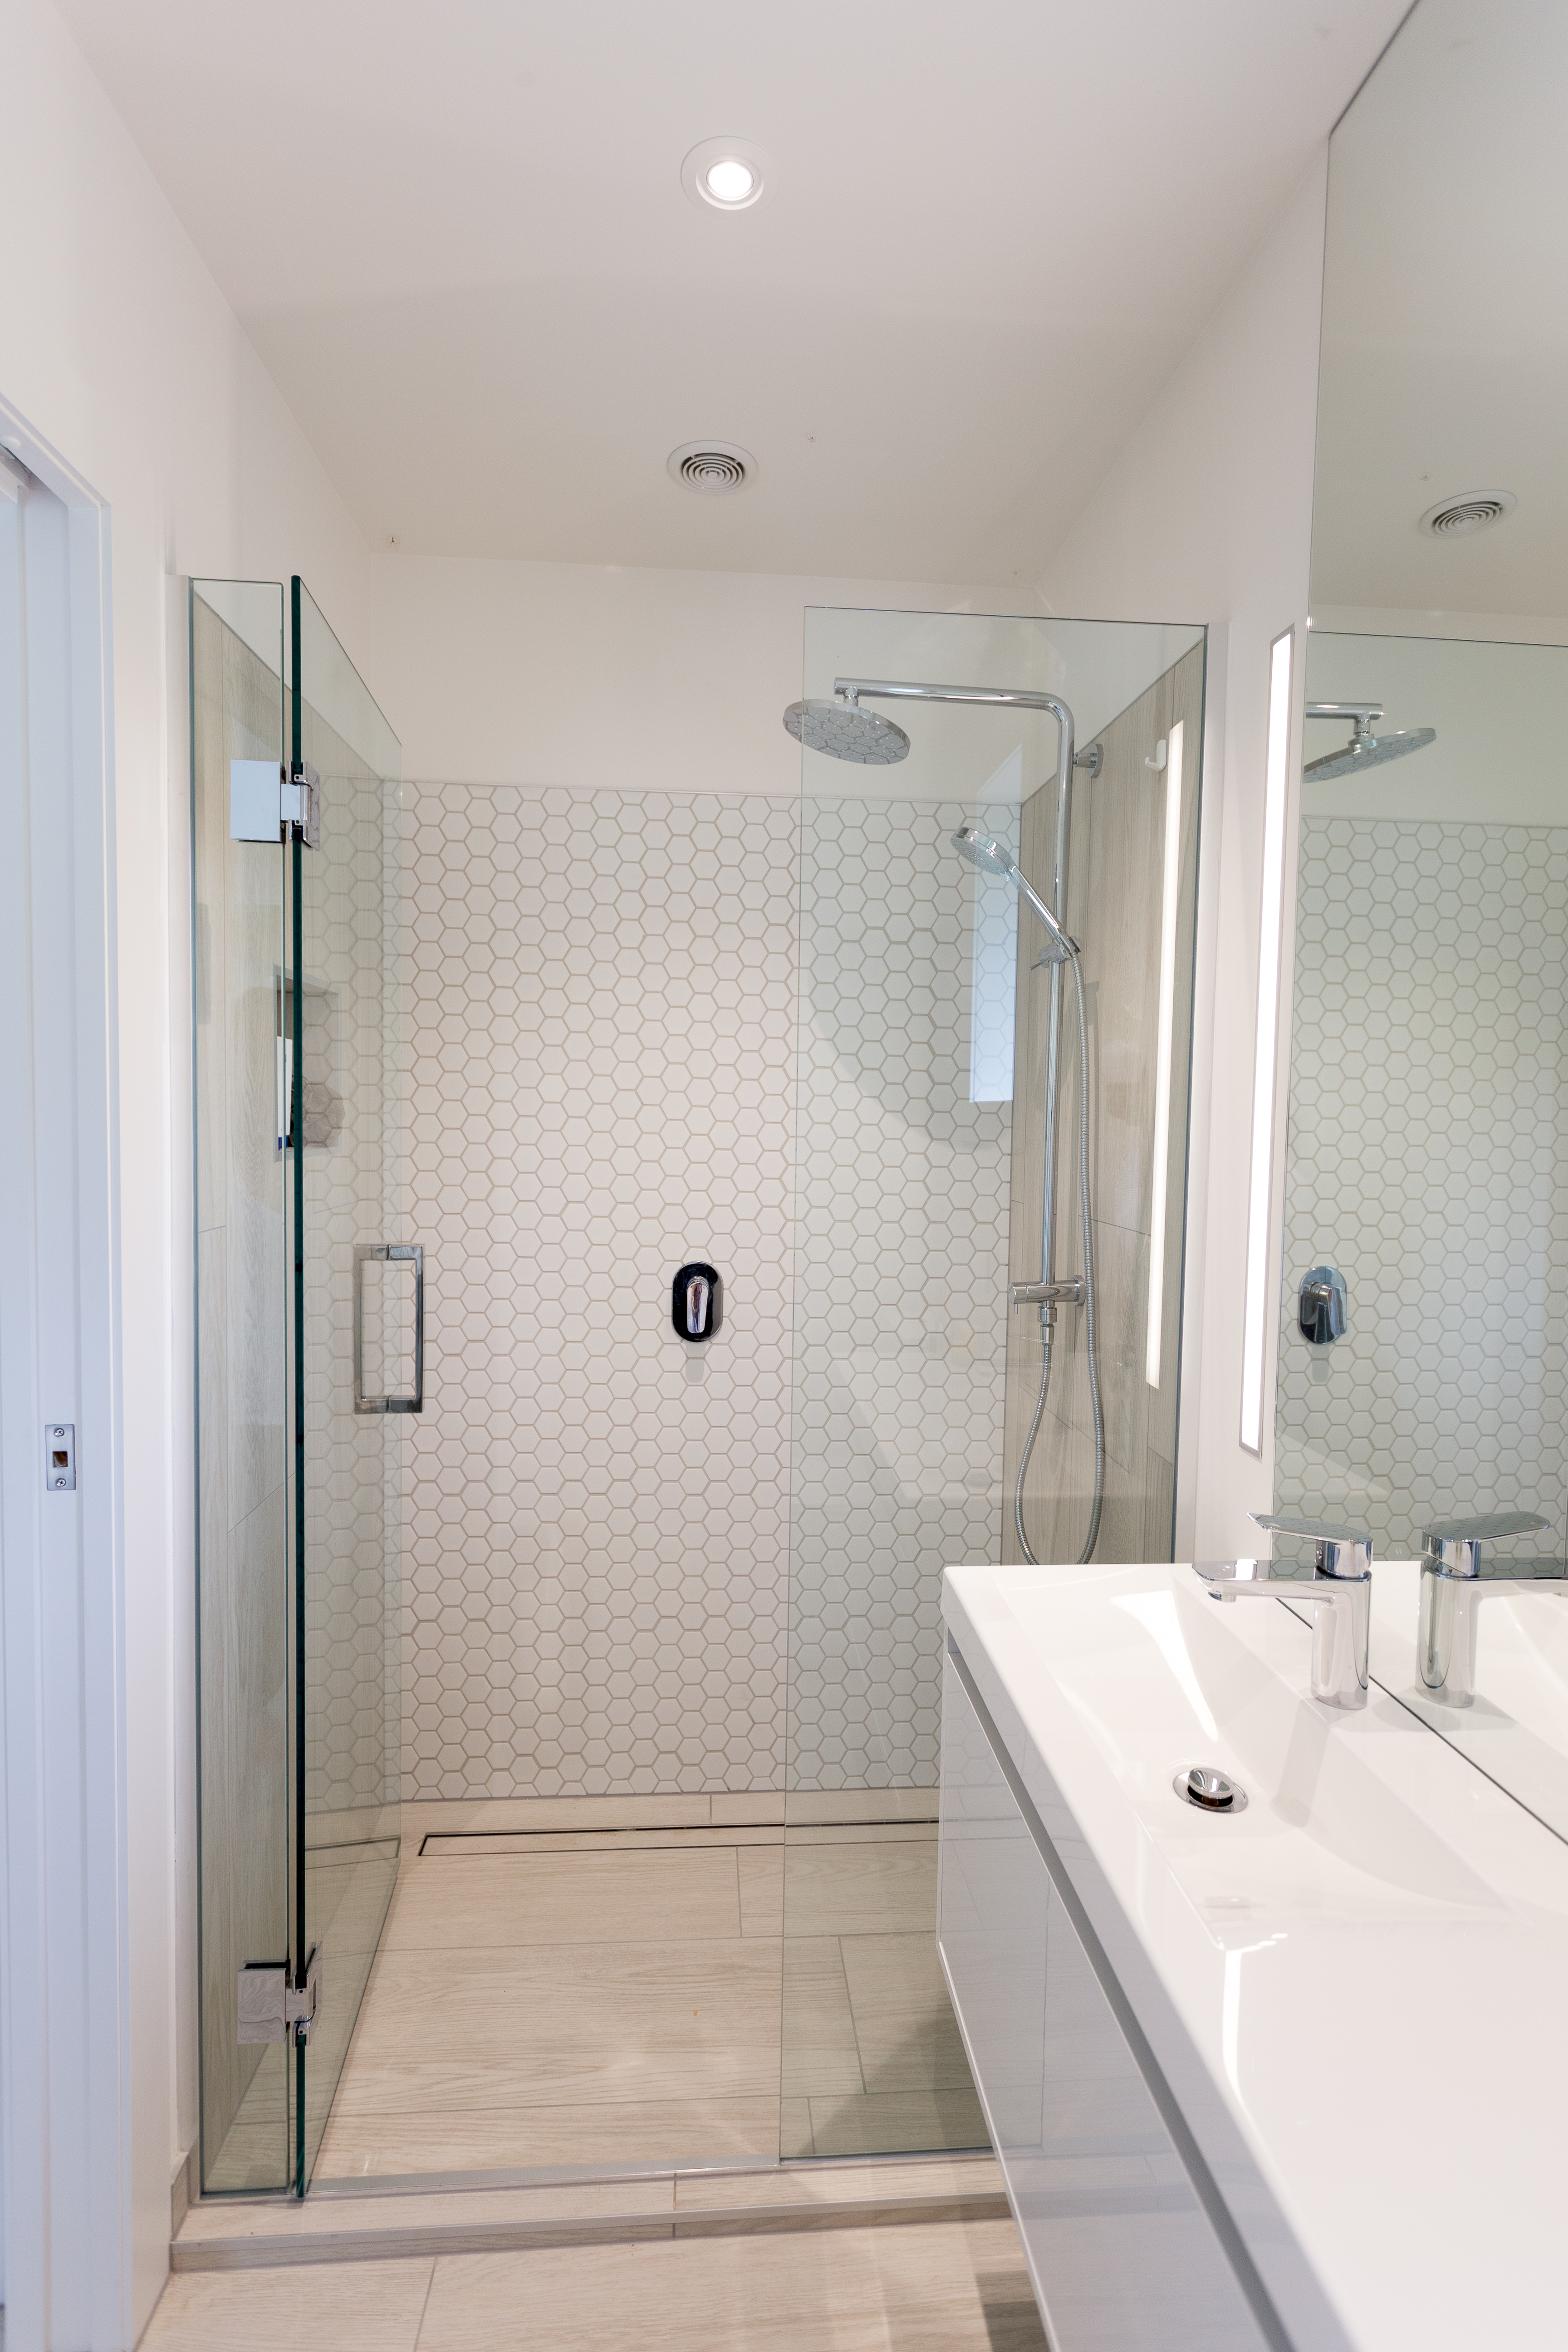 what size tile should i use in a small